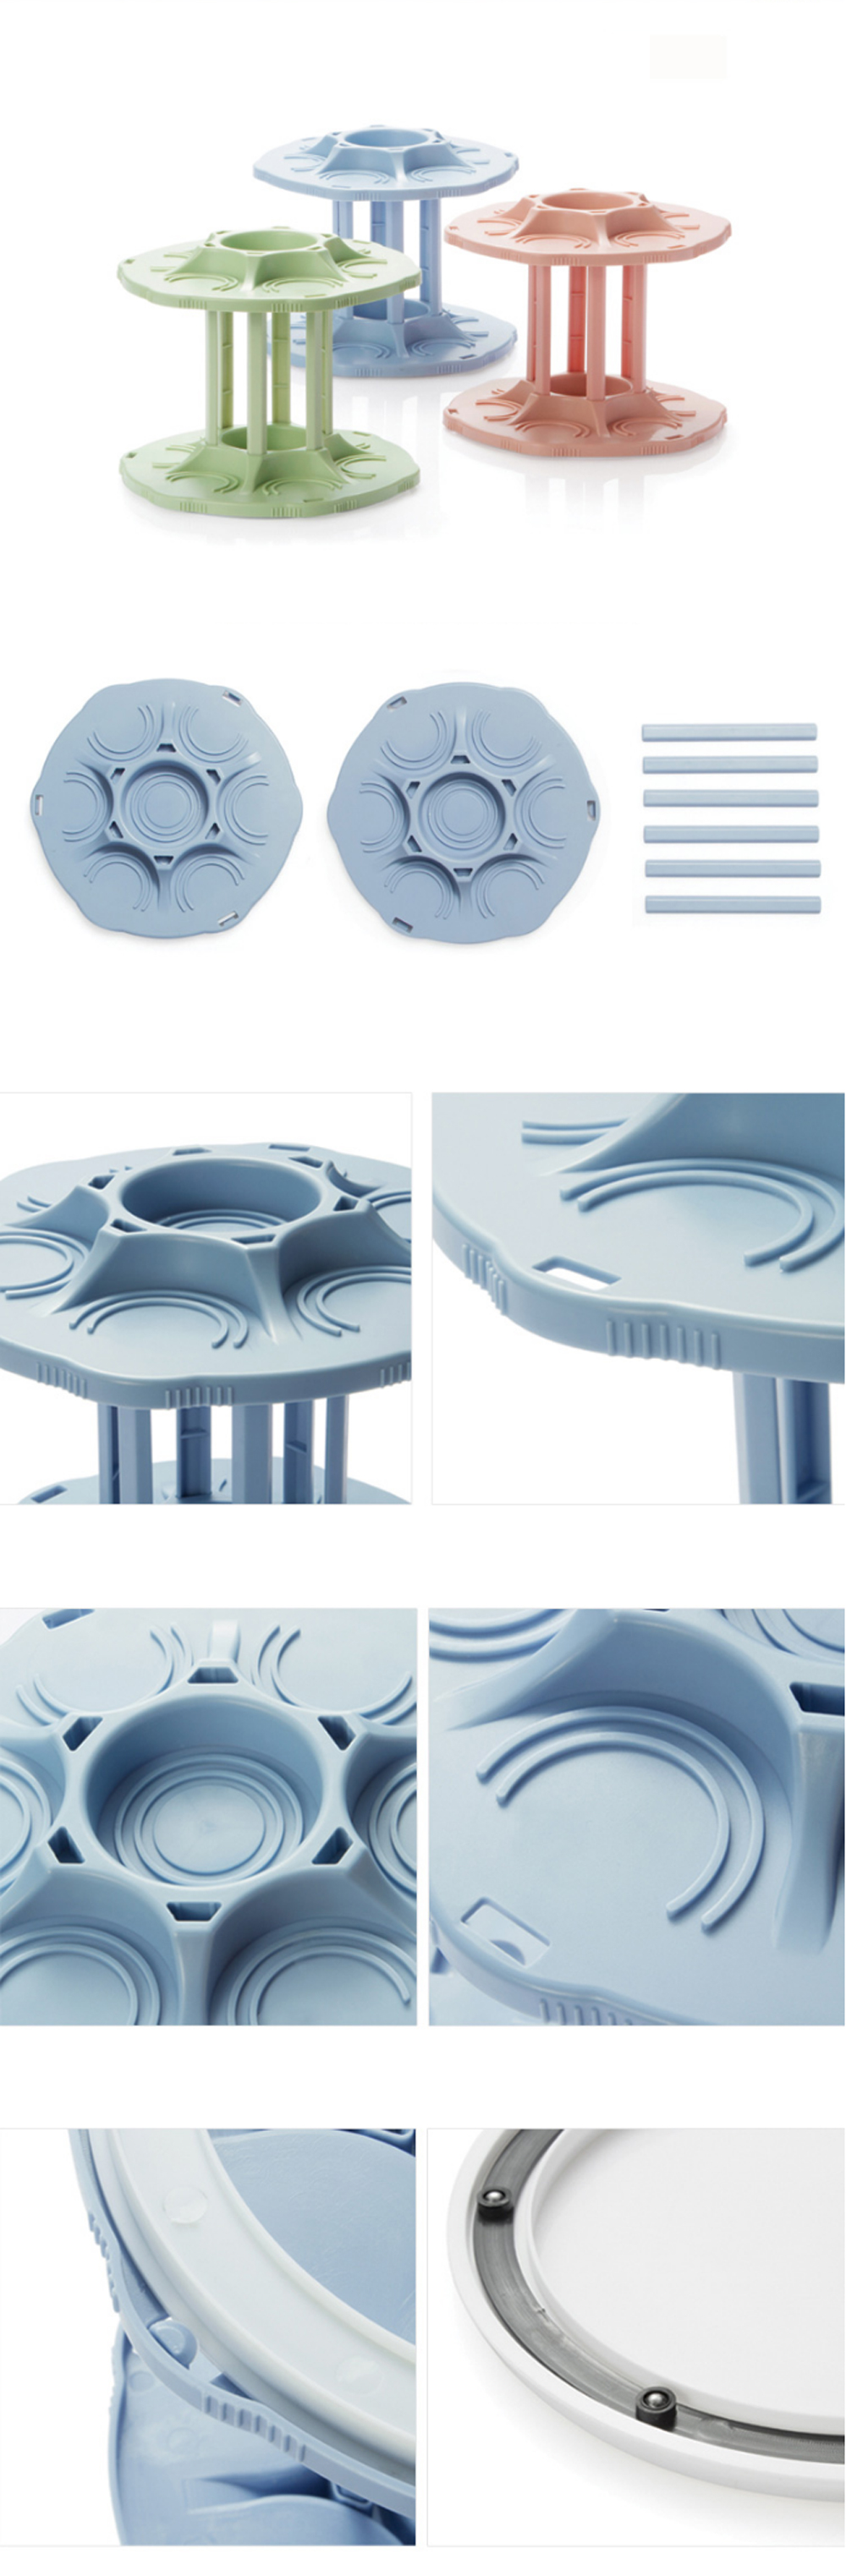 360 Degree Rotating Beverage Tray Can Storage Rack